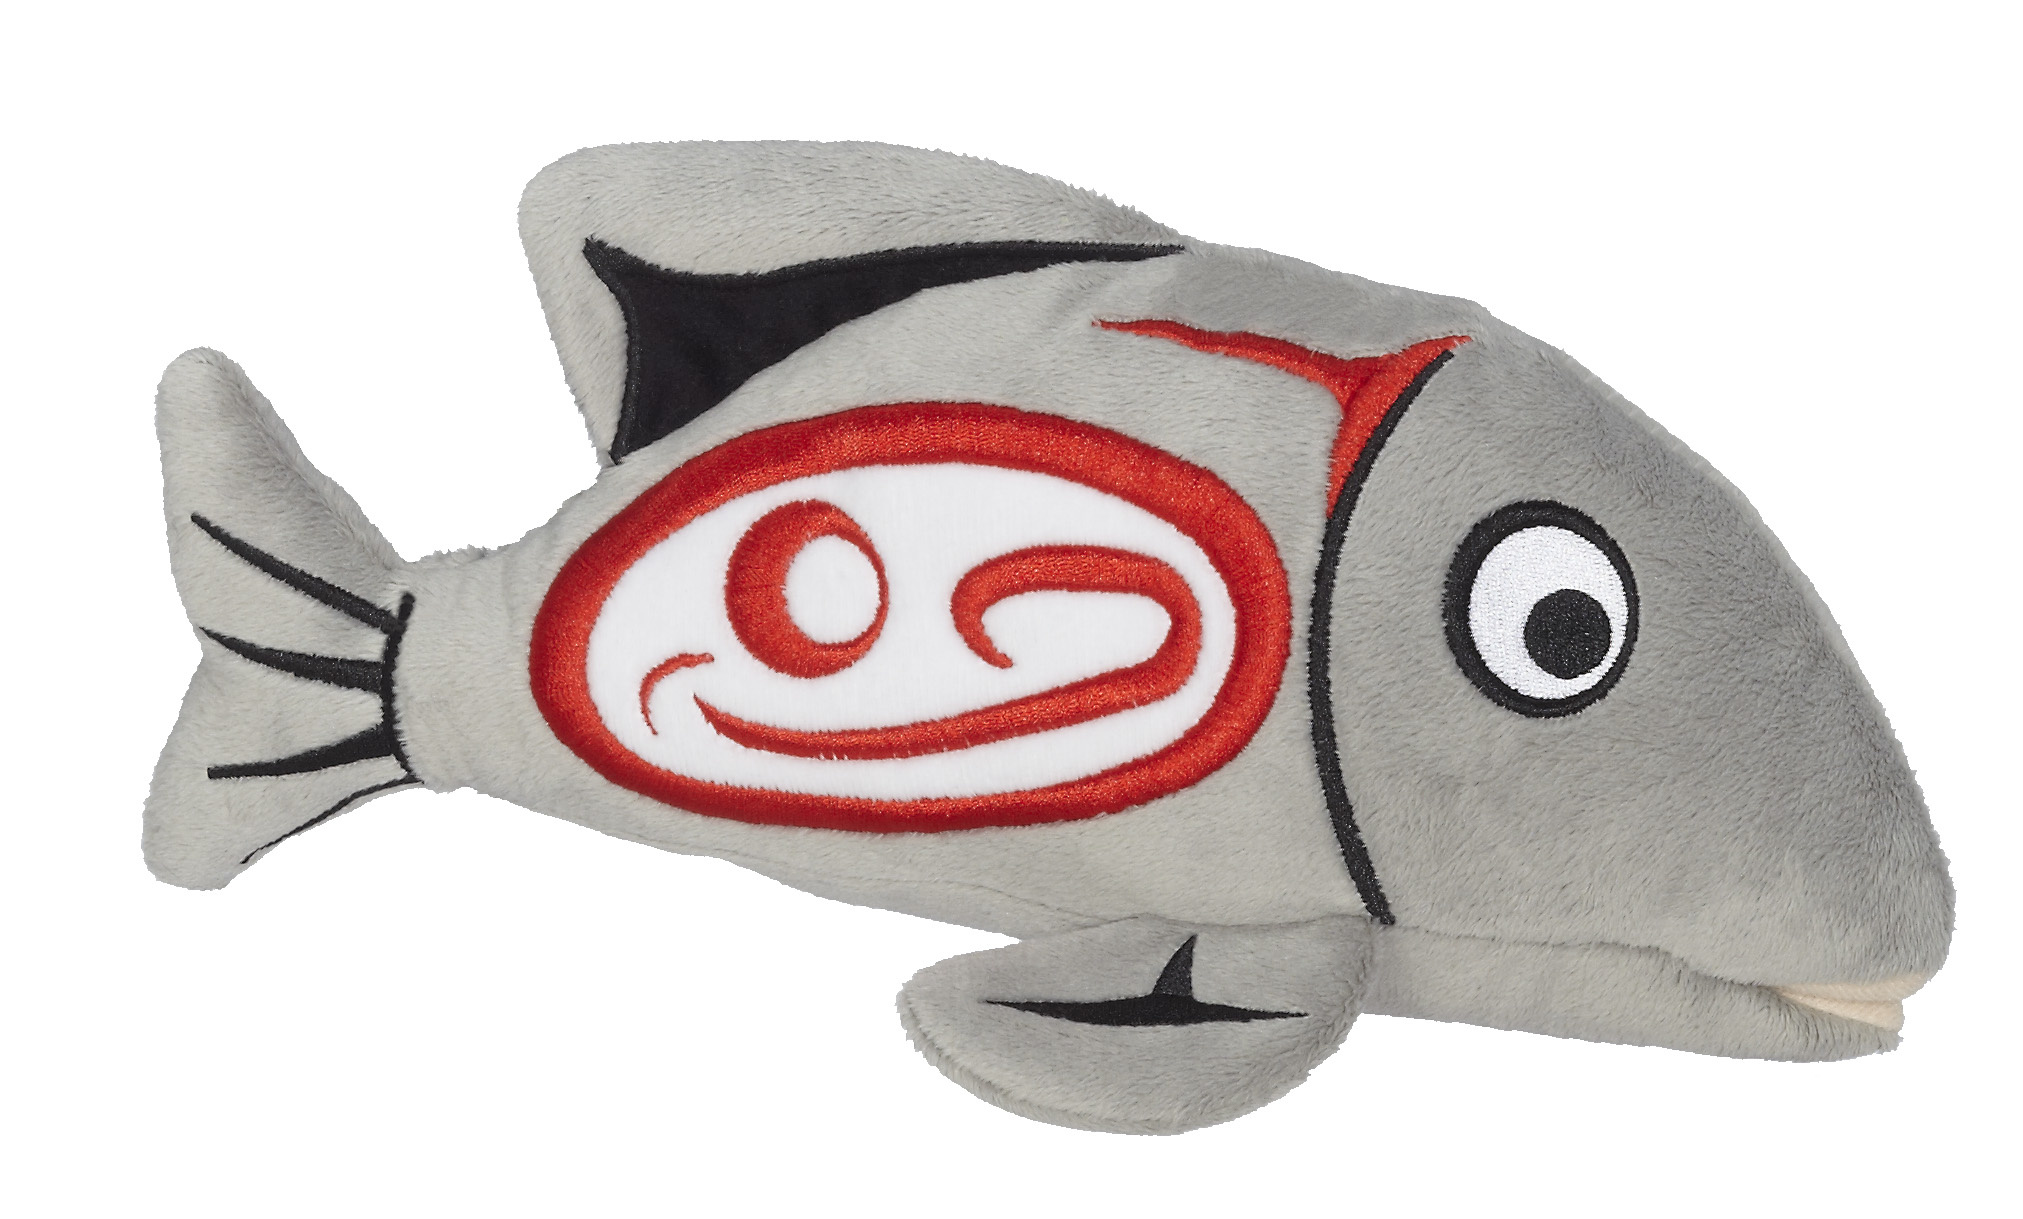 Bill Helin designed Plush Toys